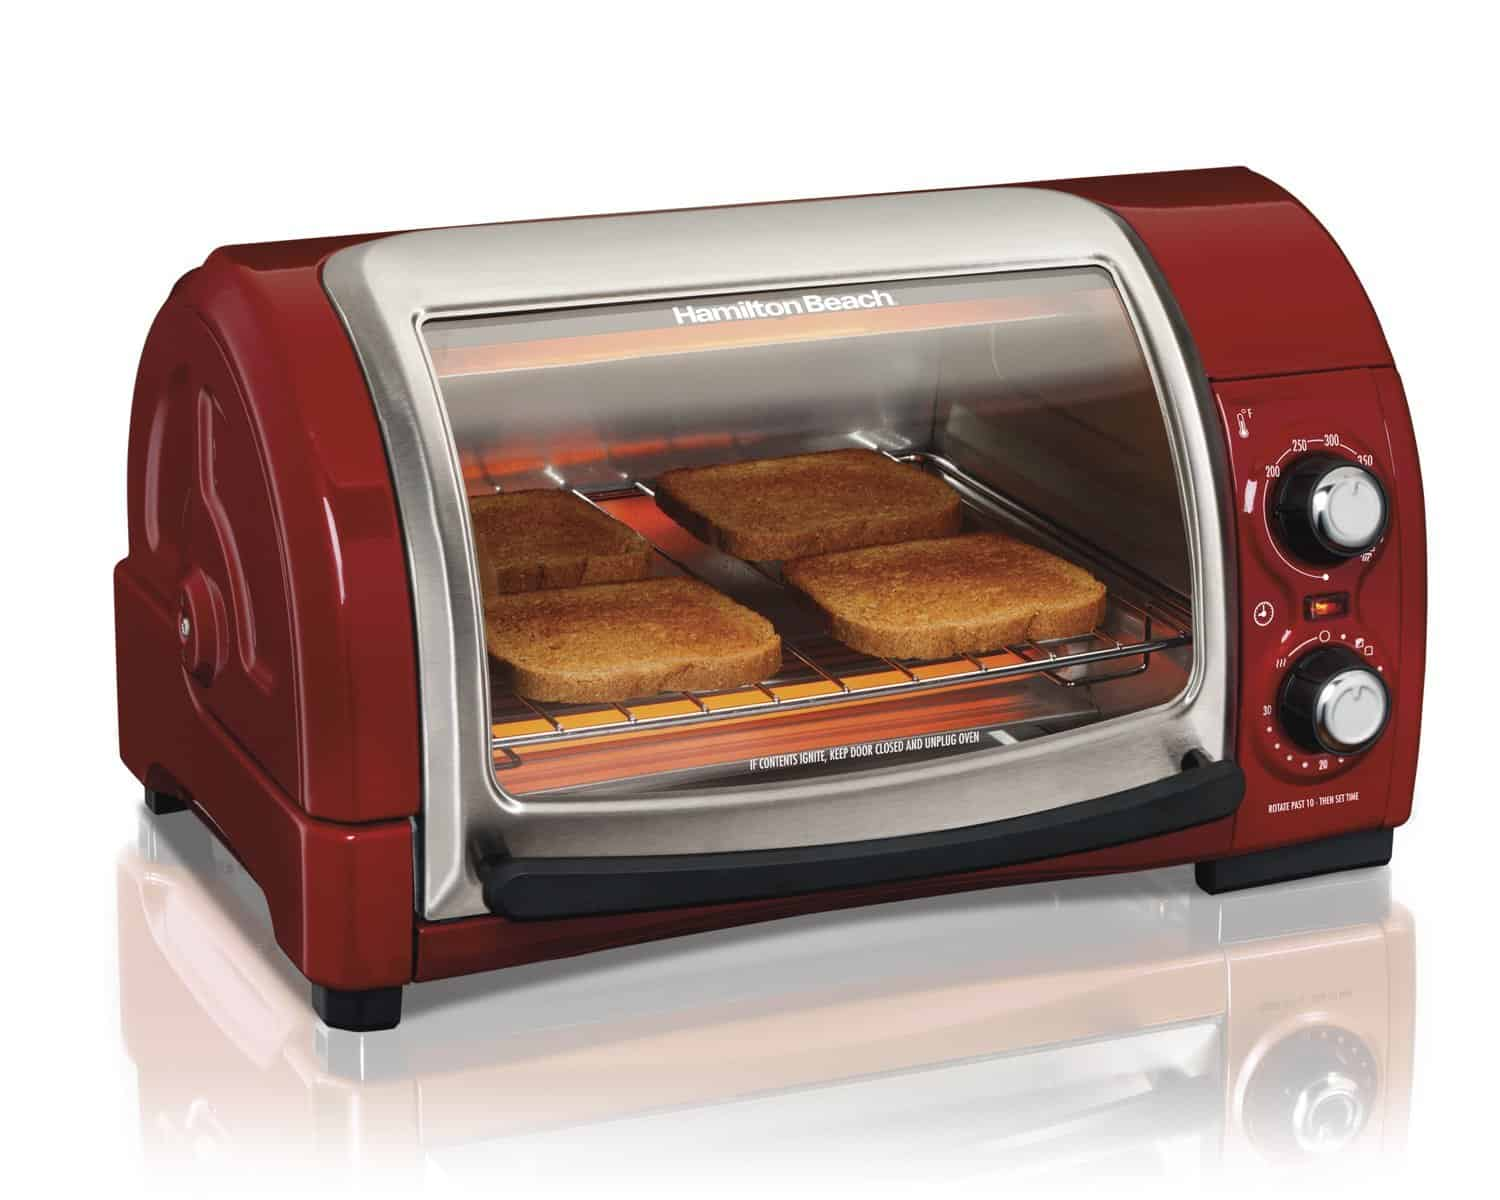 18 Best Small Toaster Oven Options For 2019